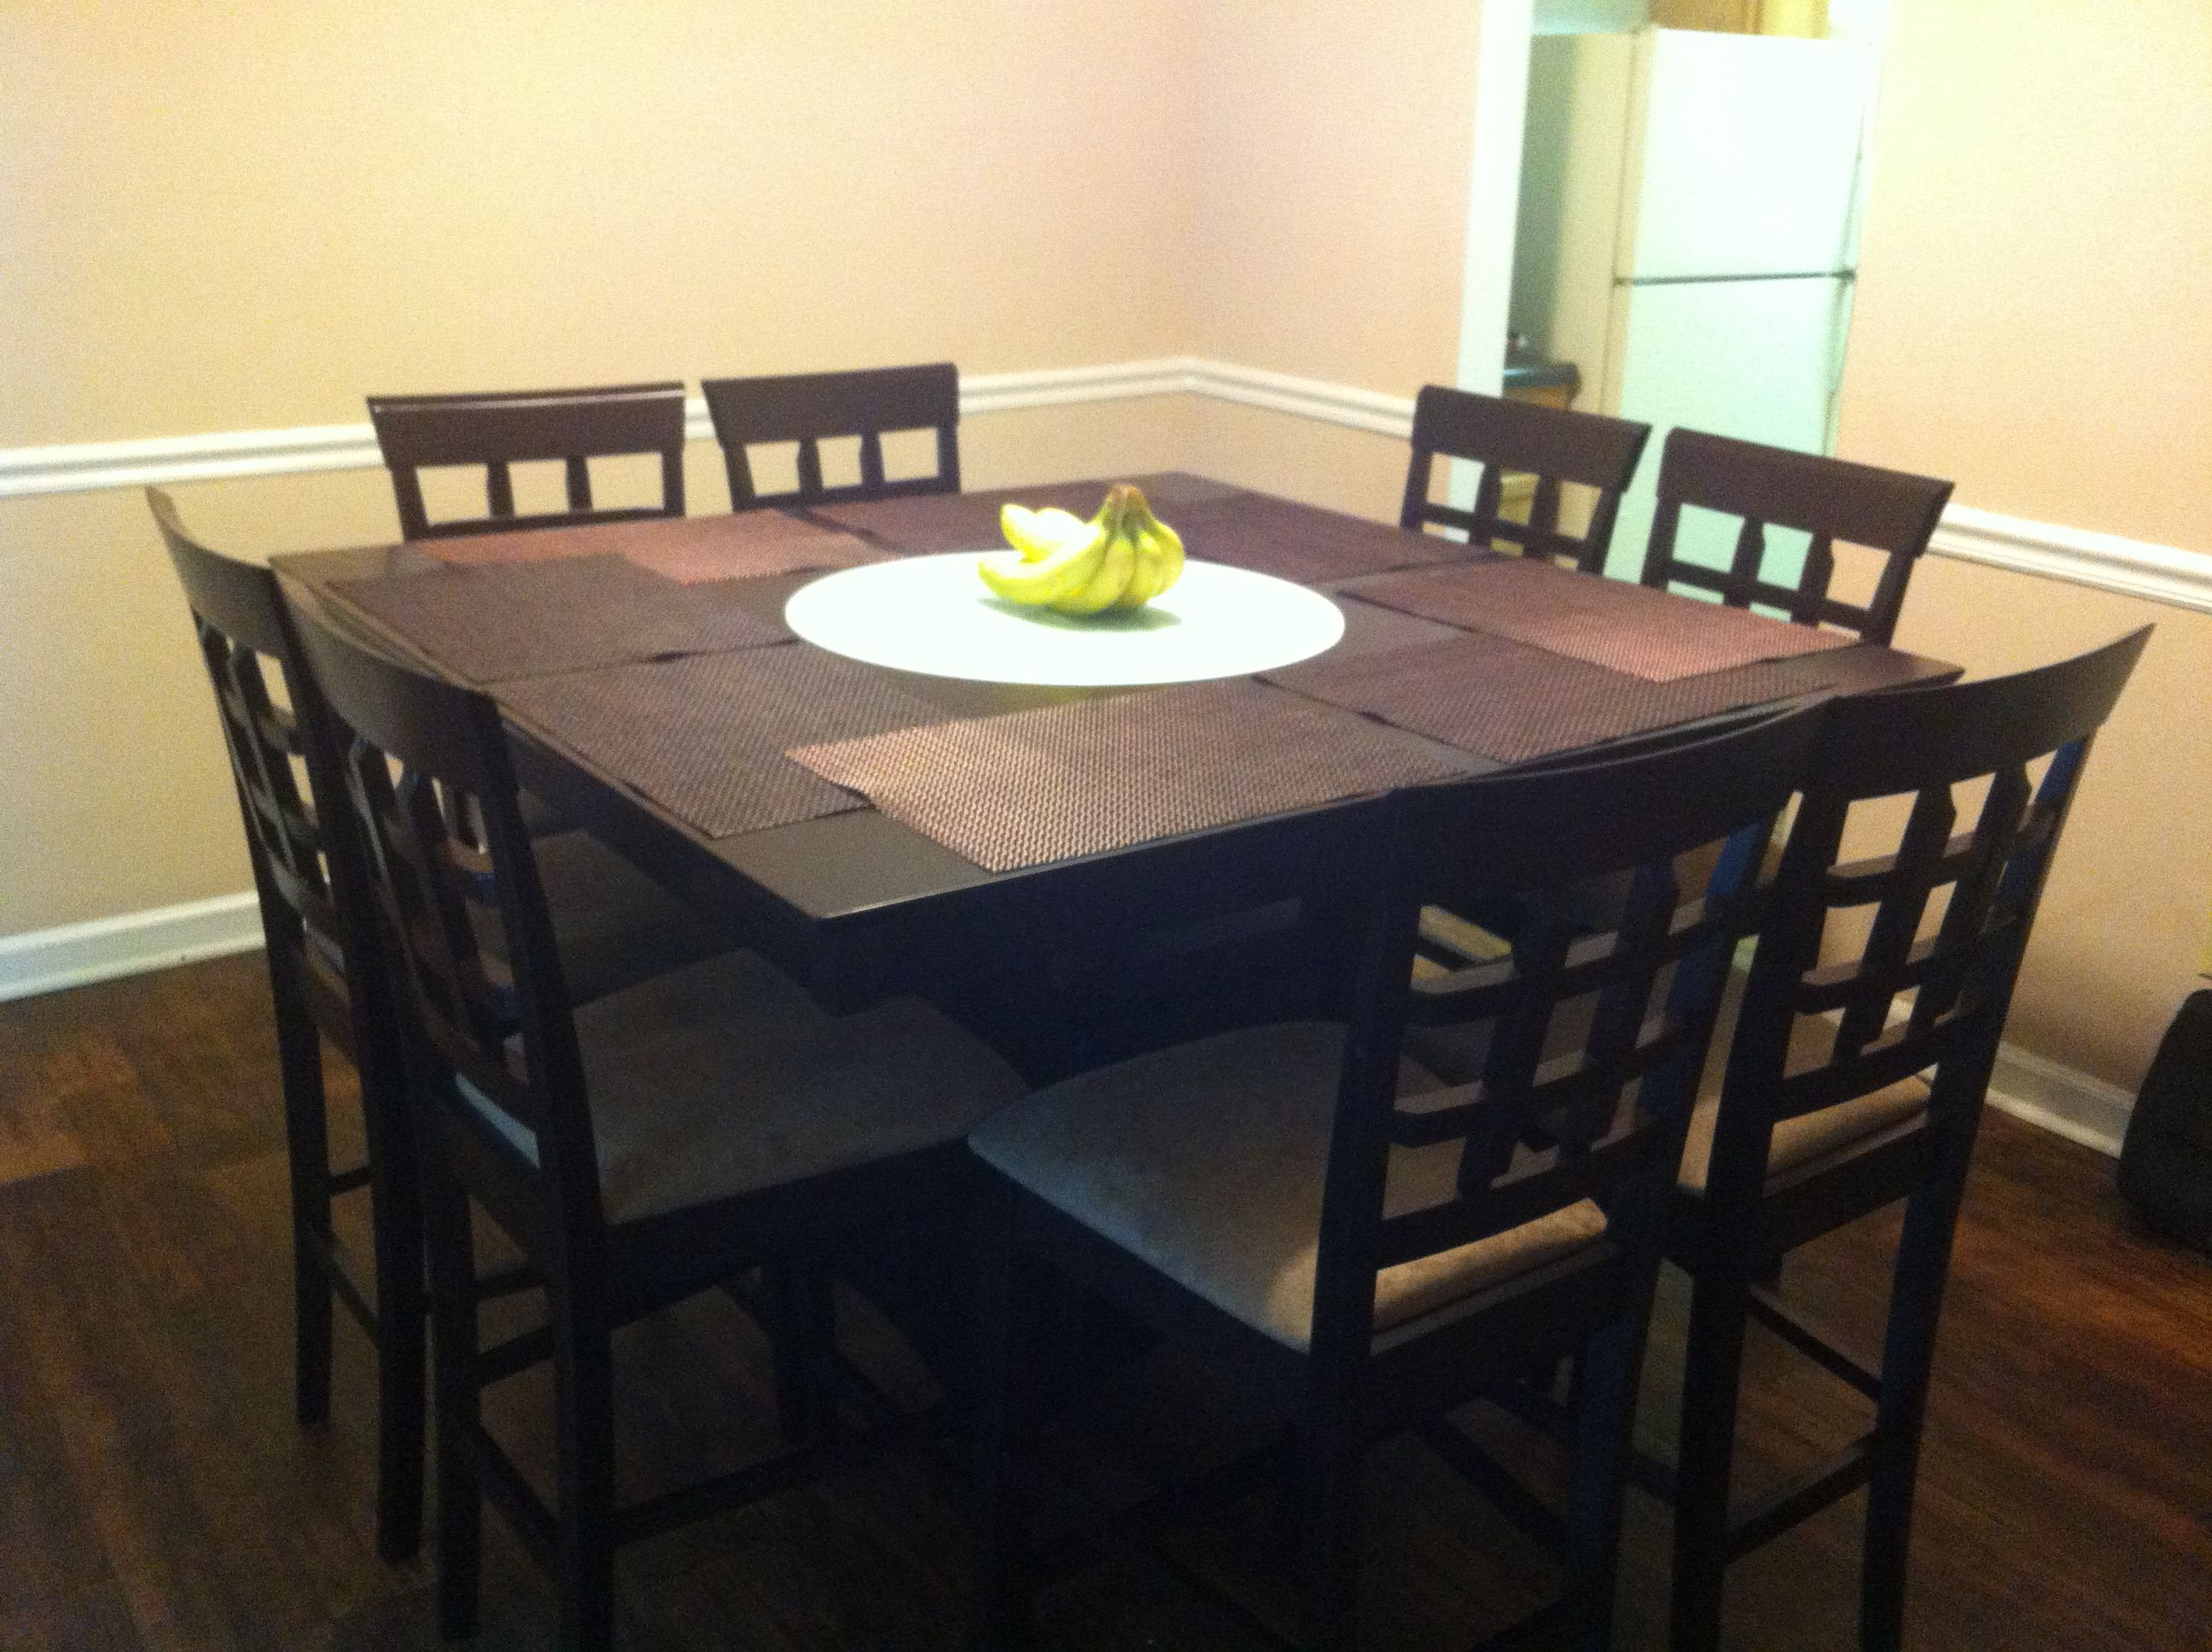 new dining table with lazy susan in the middle